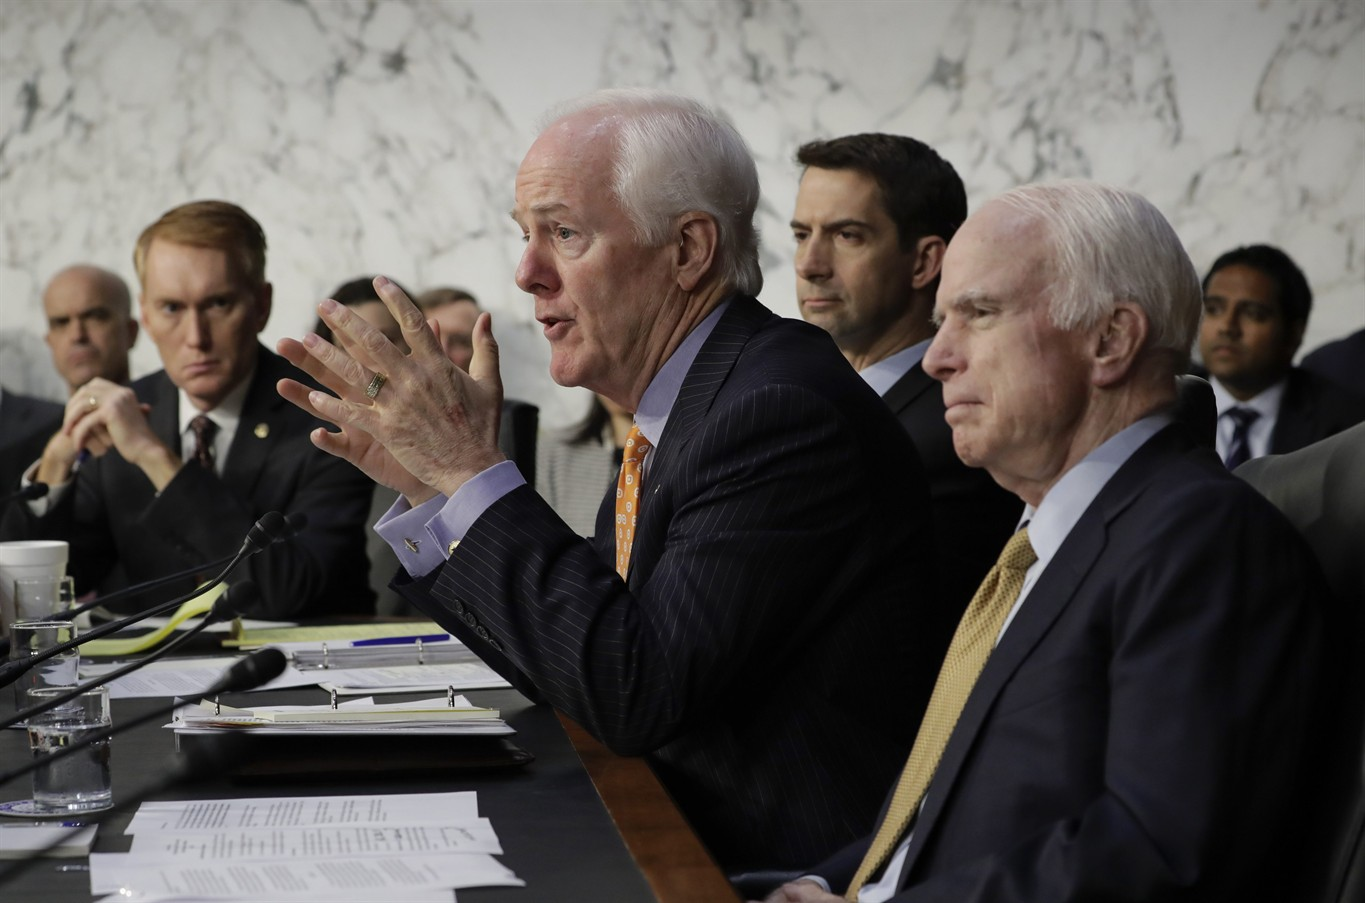 McCain blames confusing questions on lack of sleep